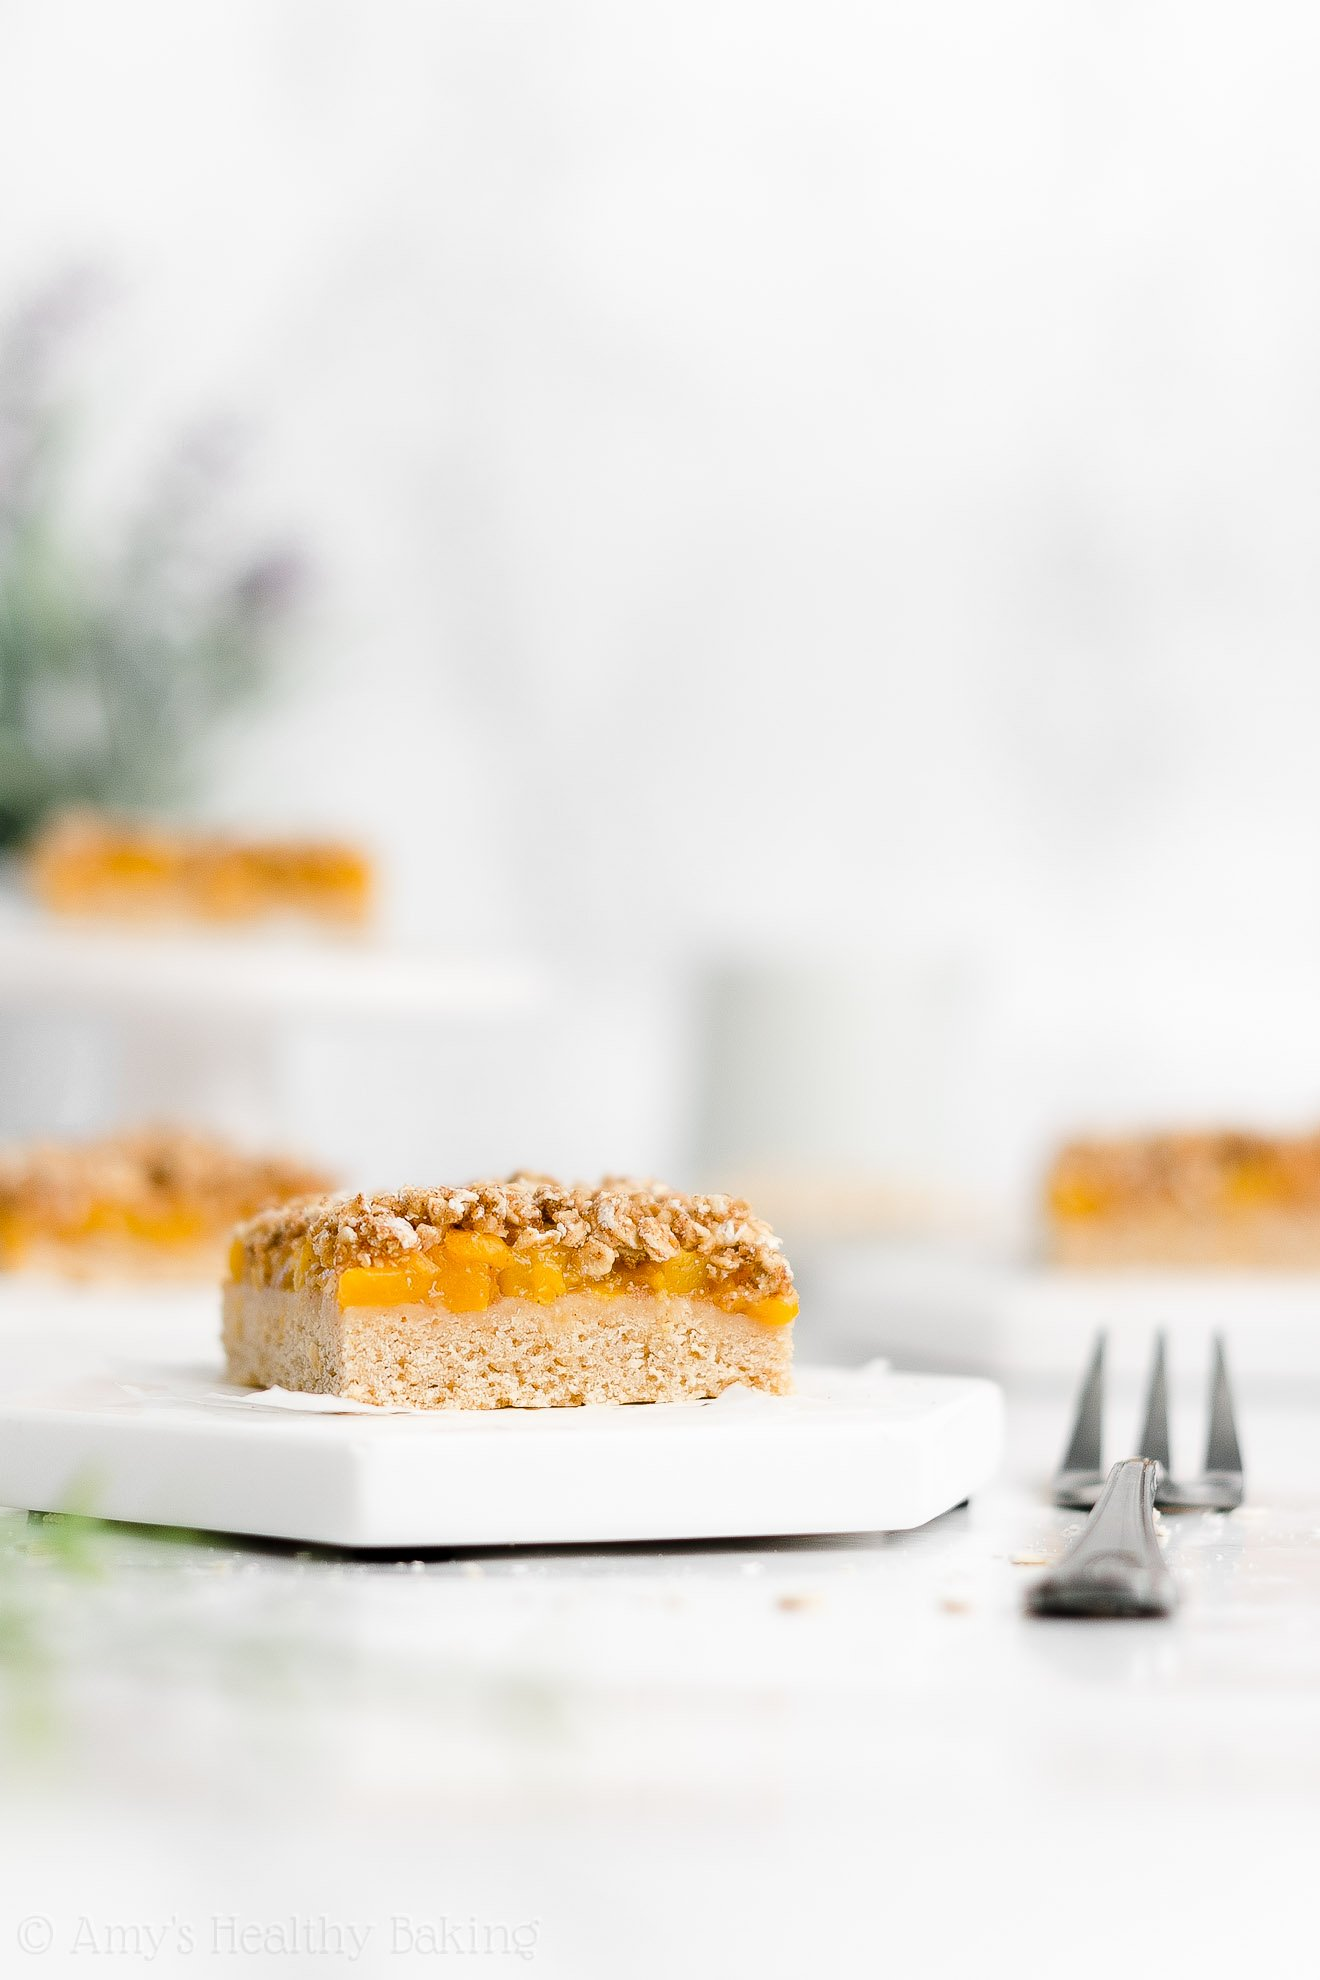 Easy Healthy Low Calorie Vegan Gluten Free Peach Oatmeal Crumble Bars